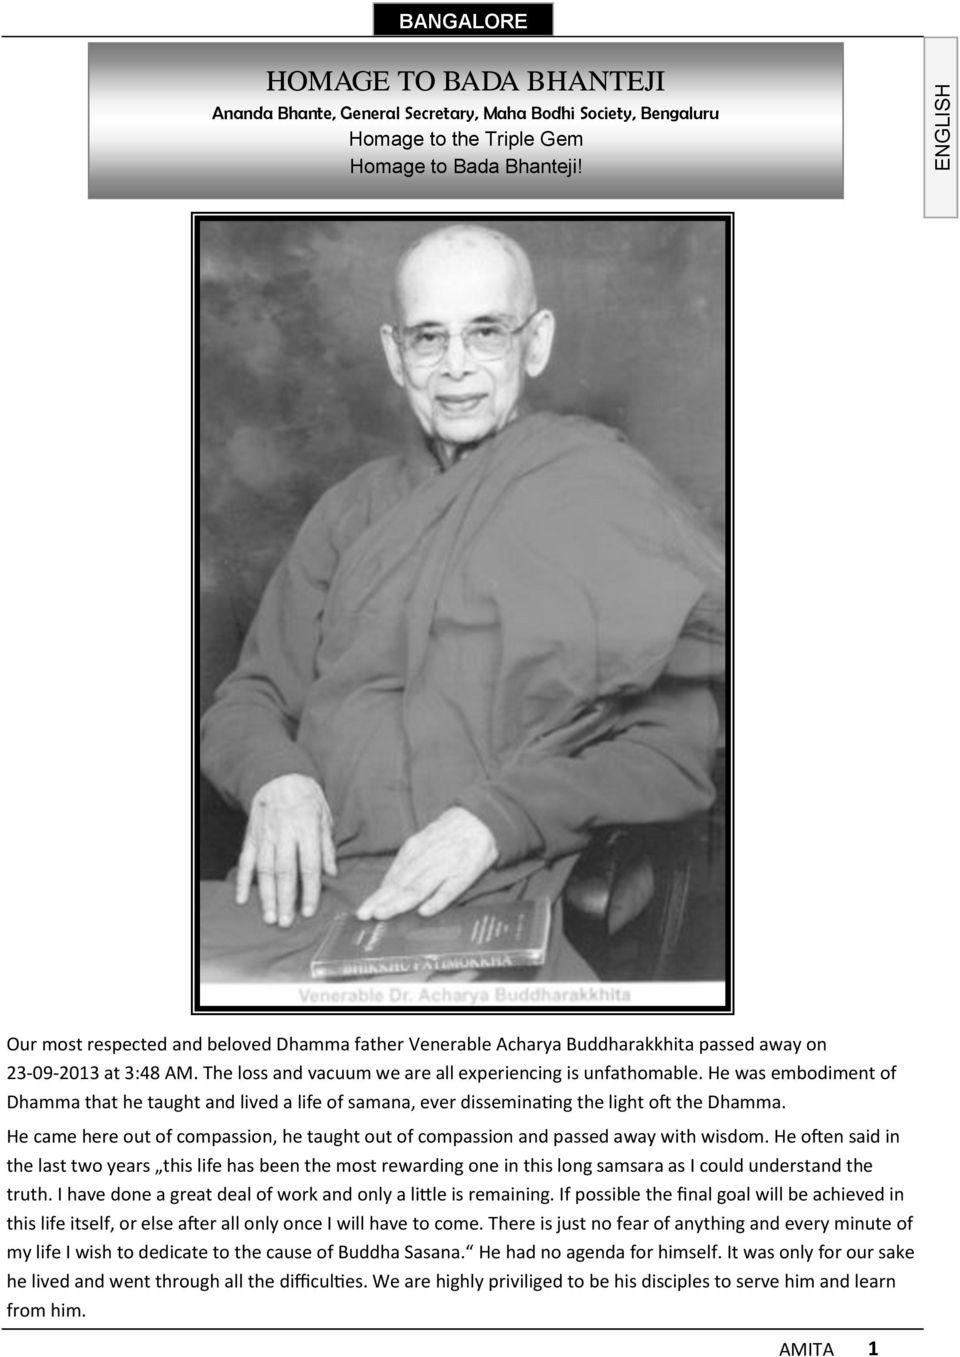 He was embodiment of Dhamma that he taught and lived a life of samana, ever dissemina ng the light o the Dhamma.